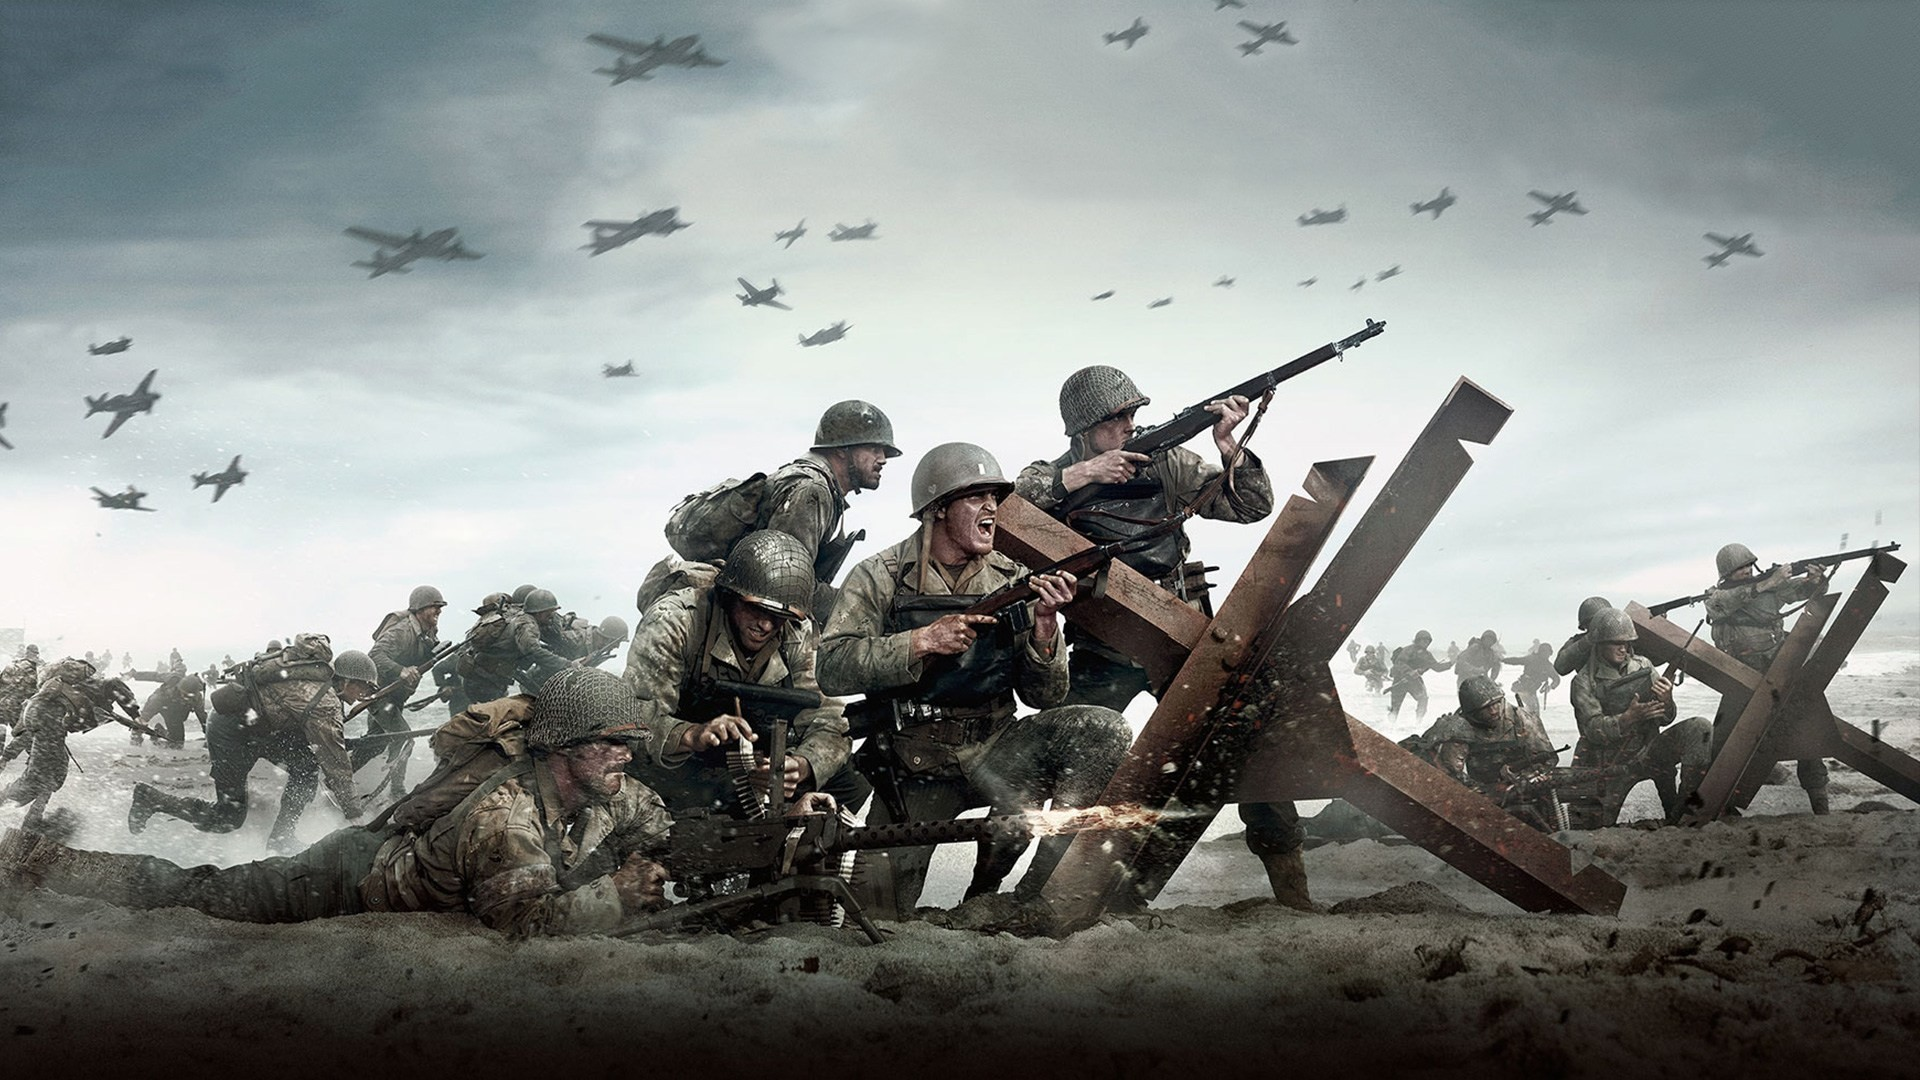 Wwii Wallpaper 70 Images